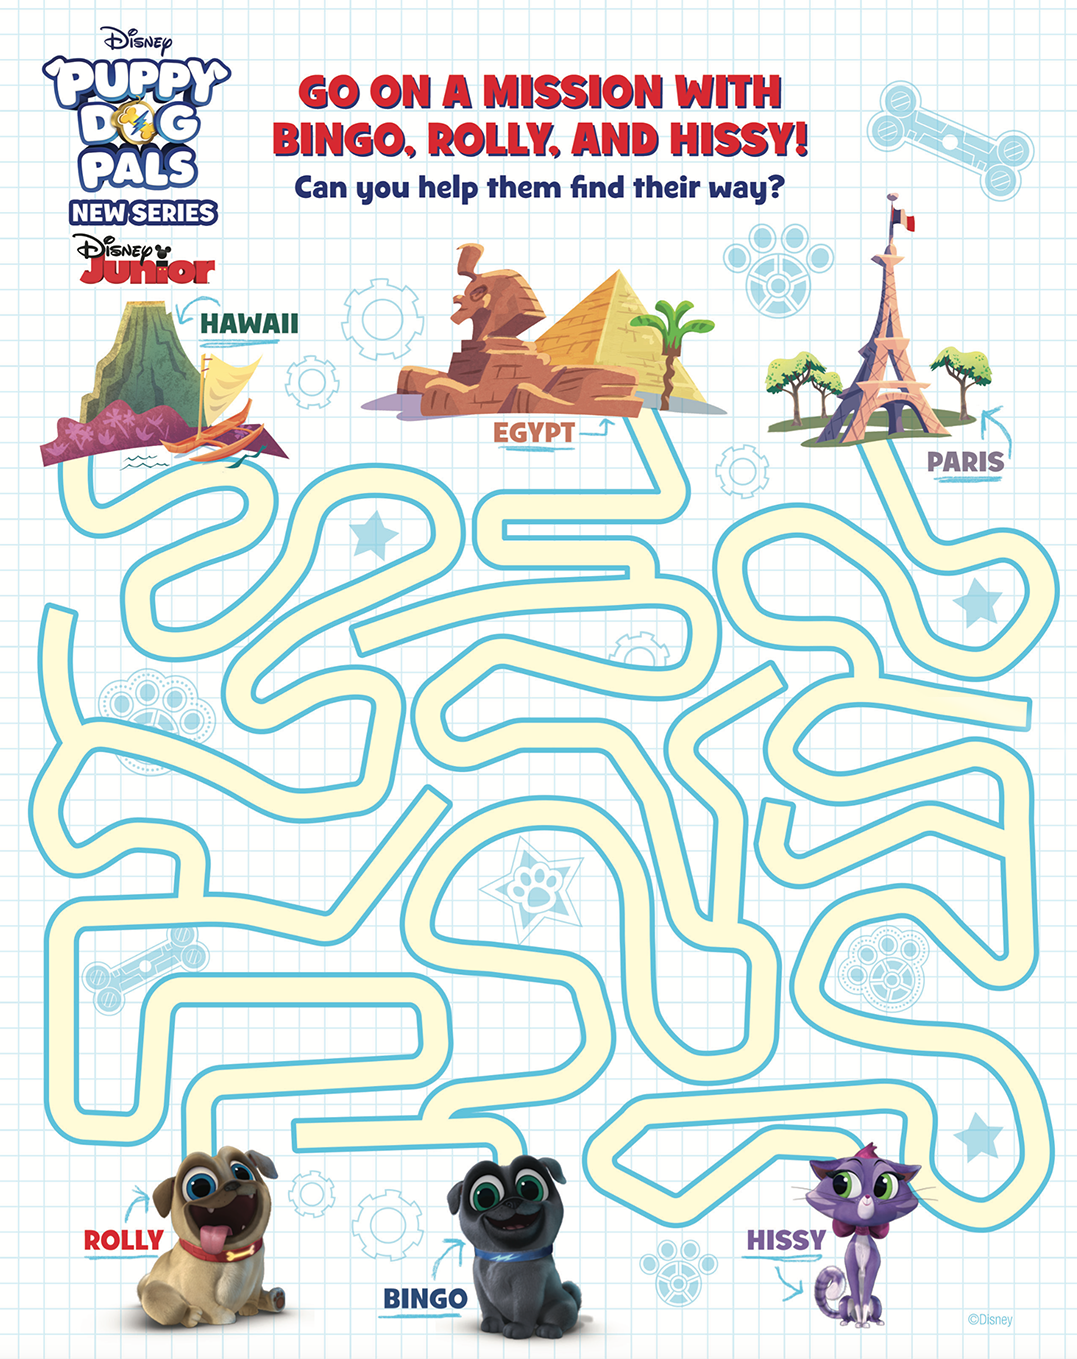 Go On A Mission With Bingo Rolly Hissy And Catch Puppy Dog Pals On Disney Channel And The Disney Jun Disney Junior Birthday Party Dog Party Games Dog Party [ 1359 x 1077 Pixel ]